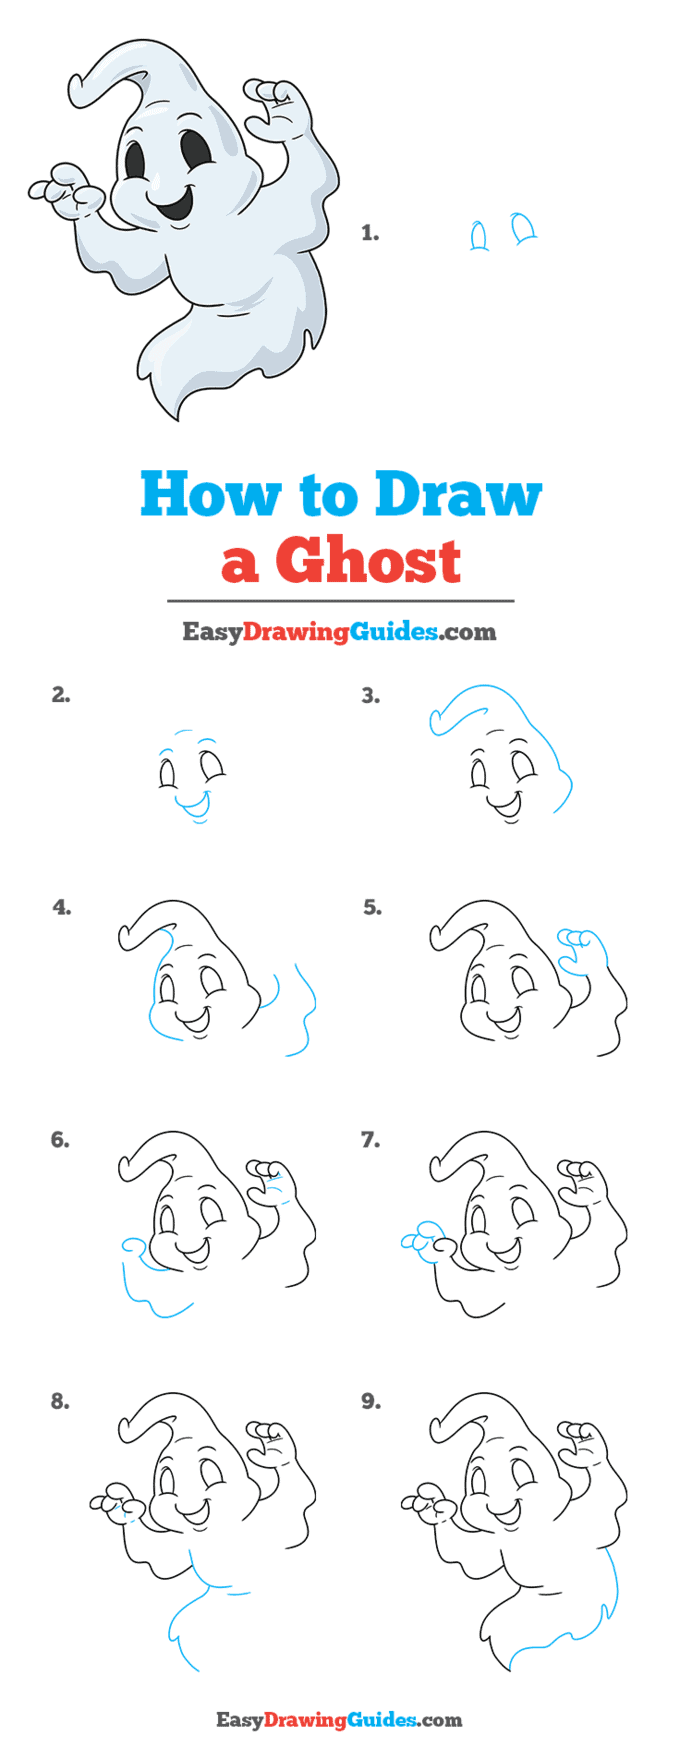 how to draw a ghost step by step tutorial image